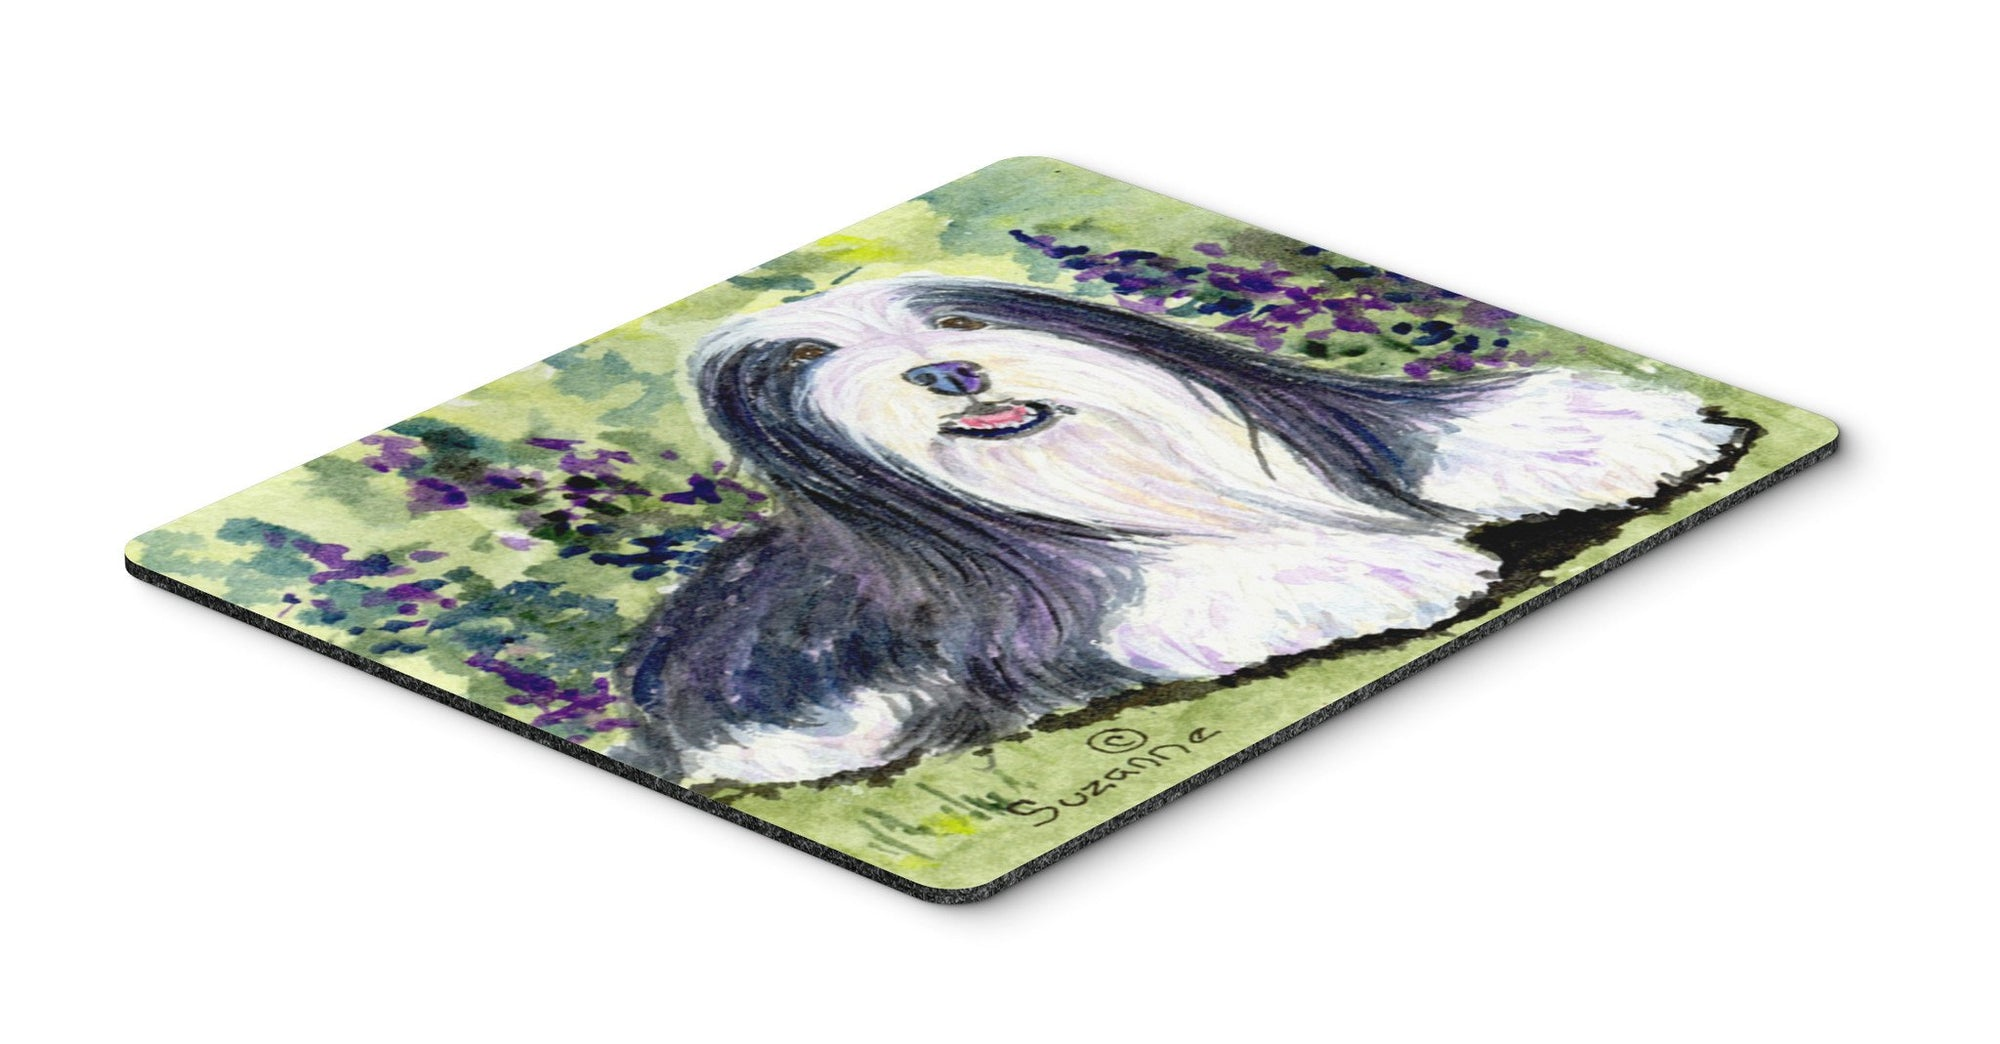 Bearded Collie Mouse pad, hot pad, or trivet by Caroline's Treasures